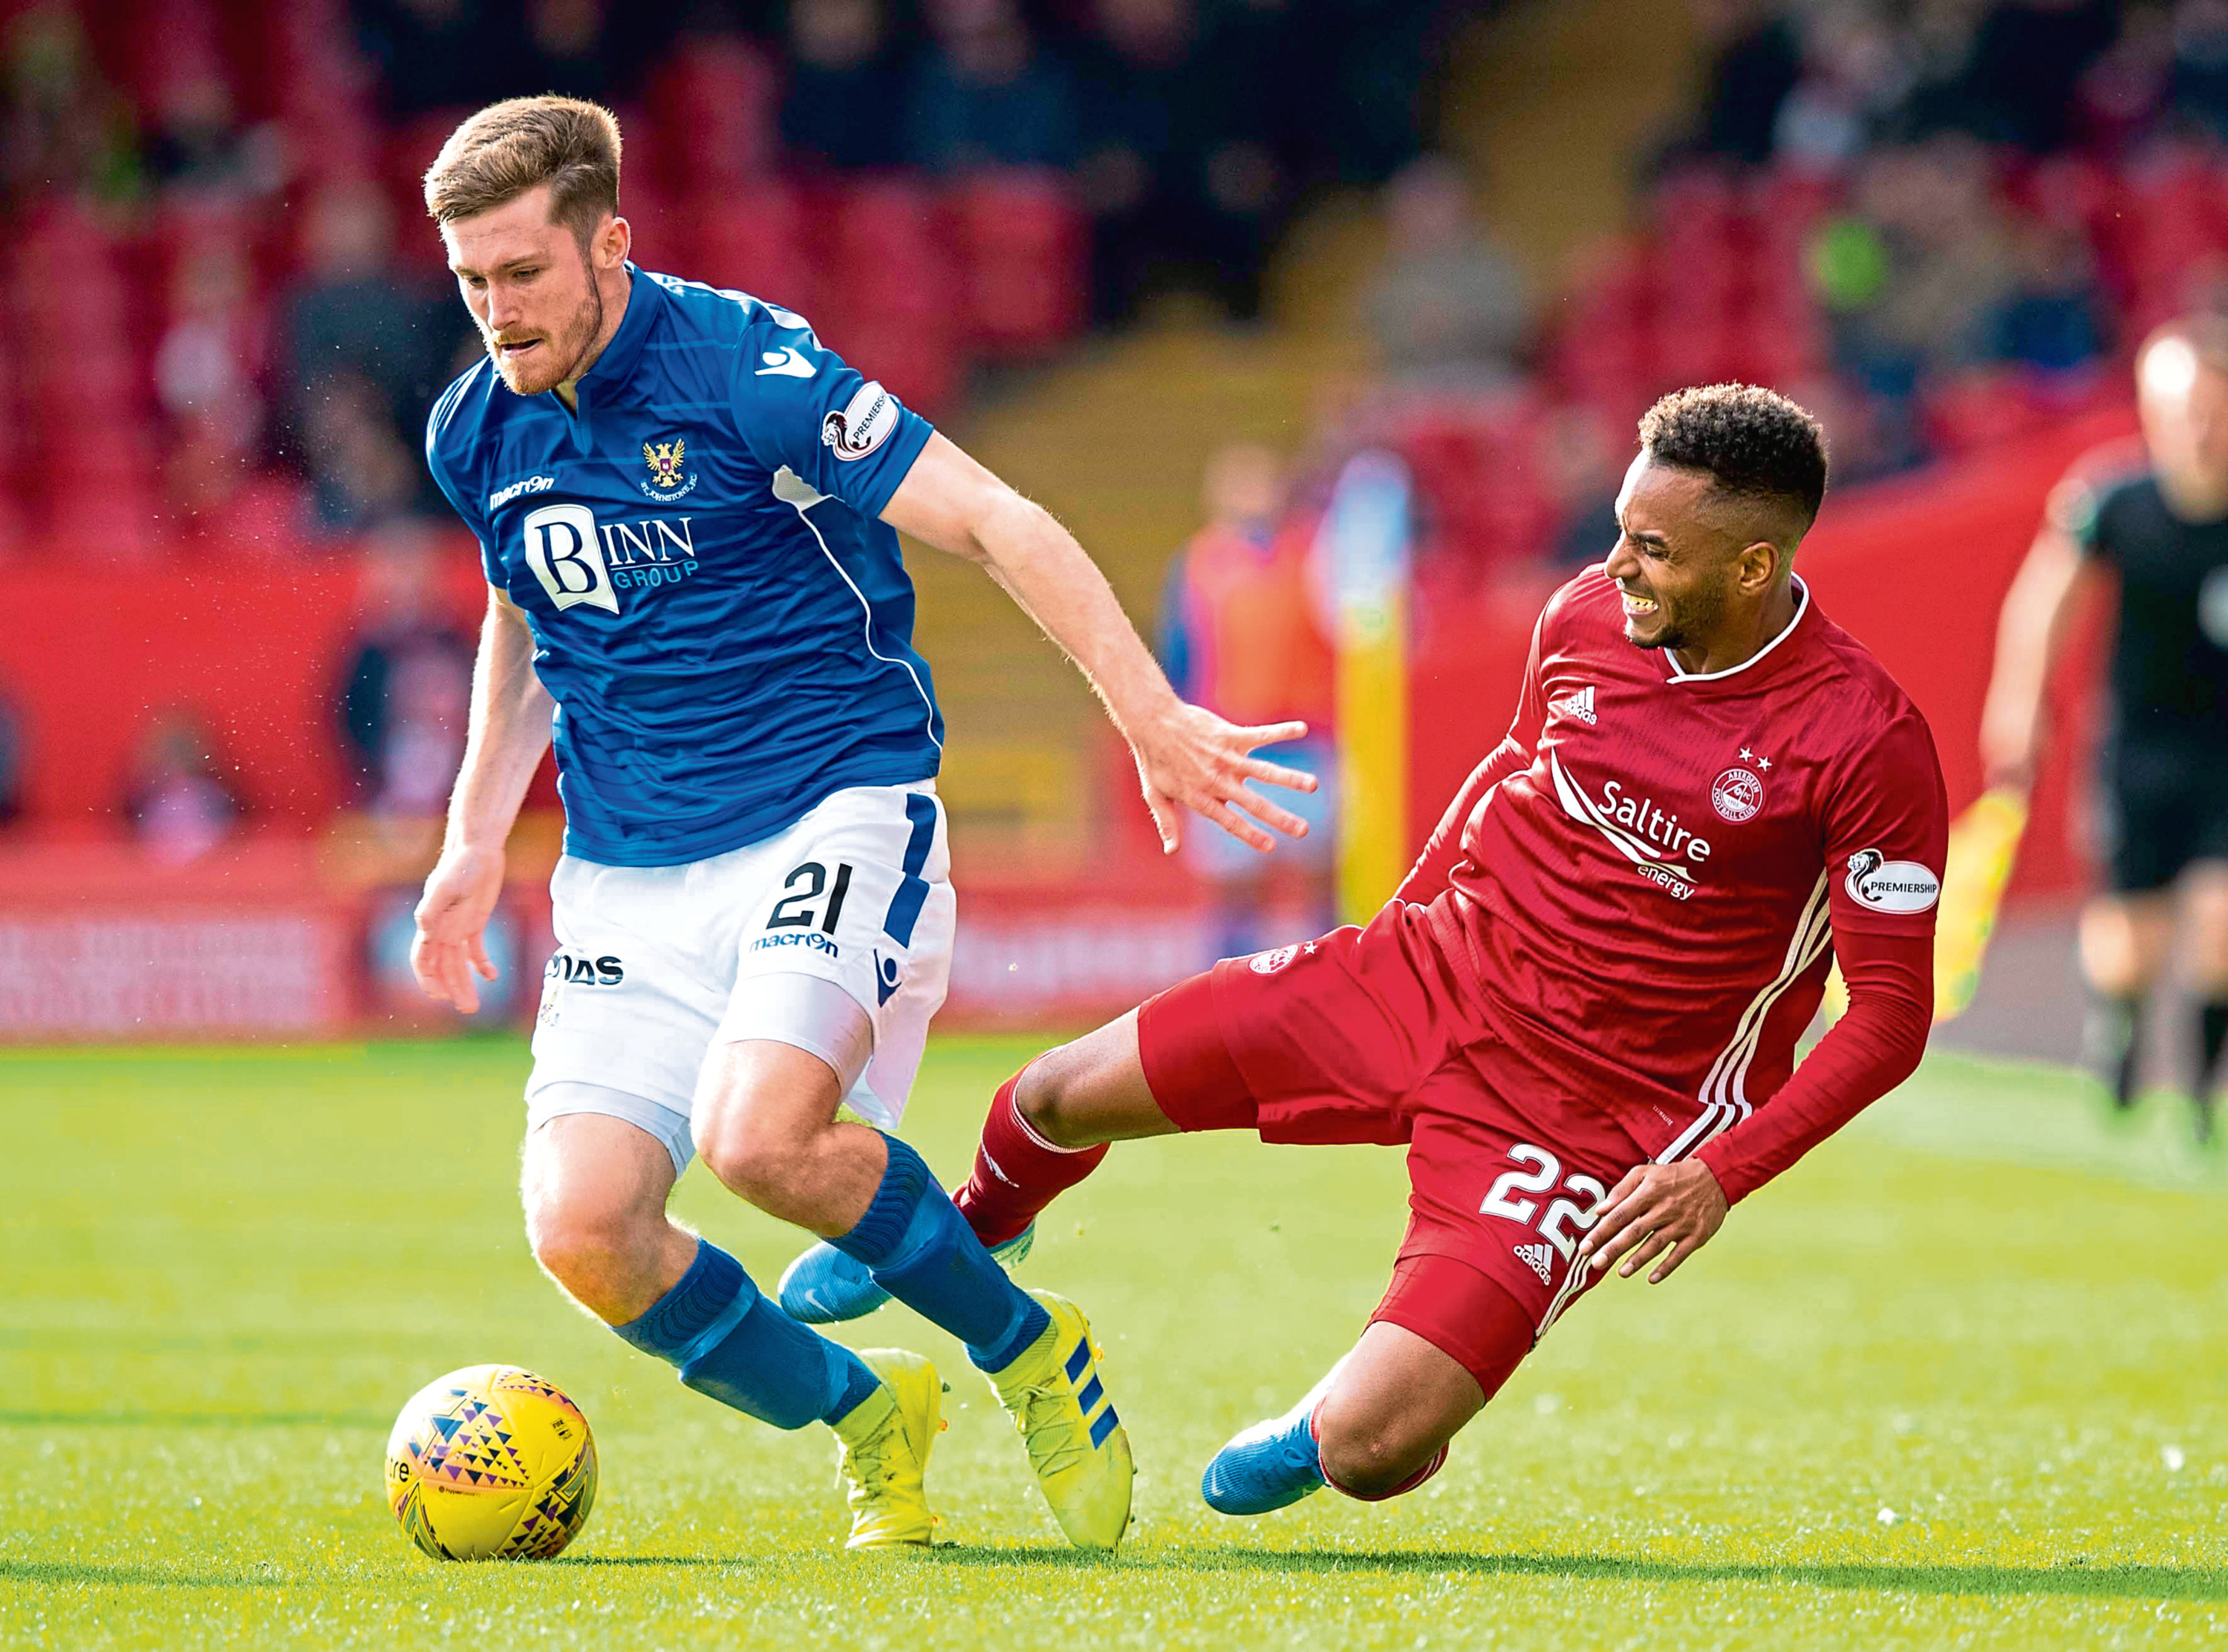 Aberdeen midfielder Funso Ojo was ruled out long term after being hurt against St Johnstone.